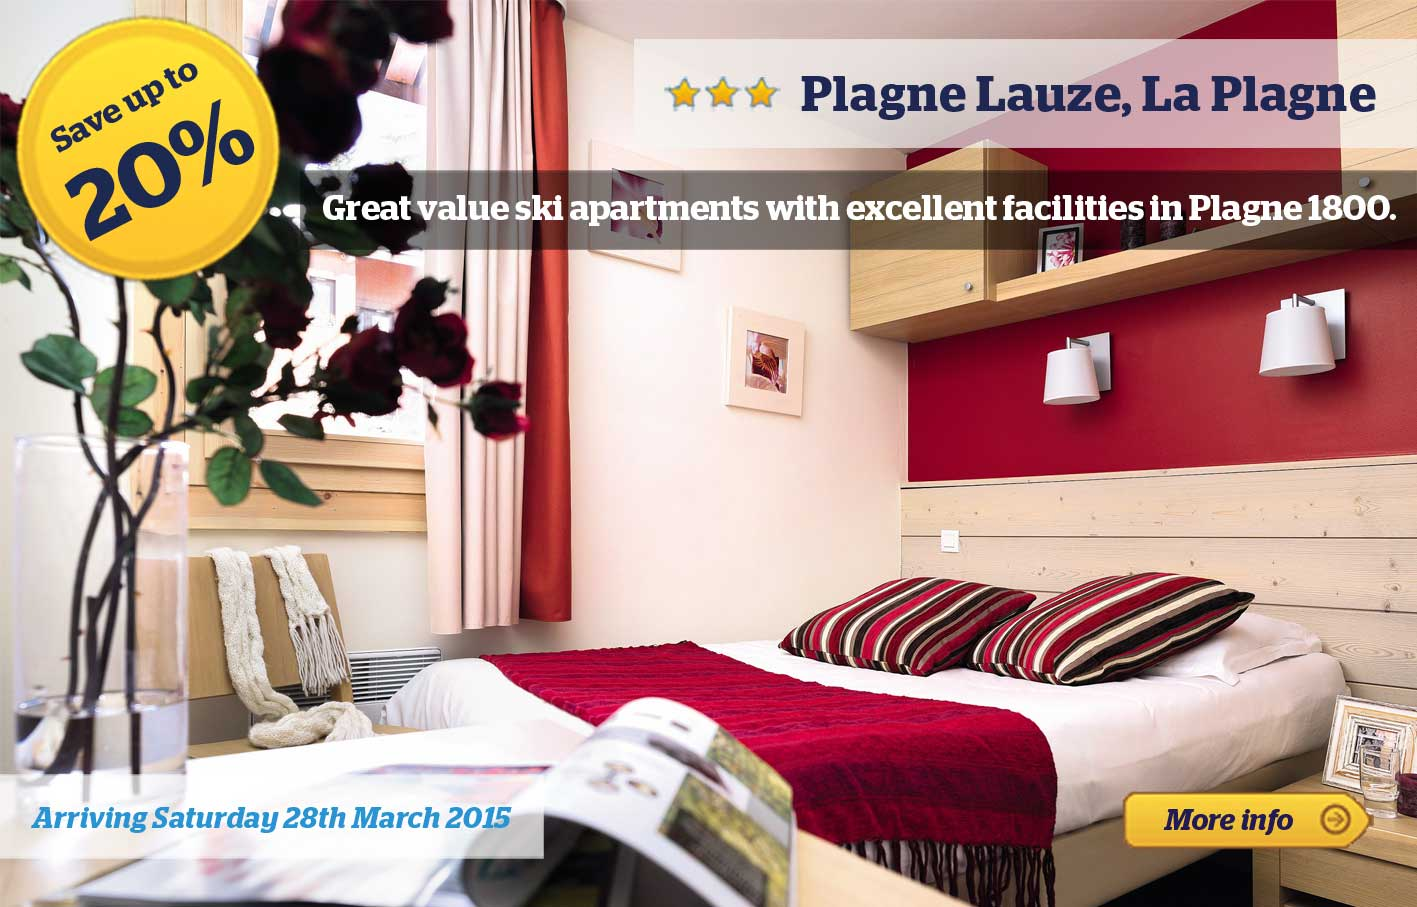 Plagne Lauze Offer